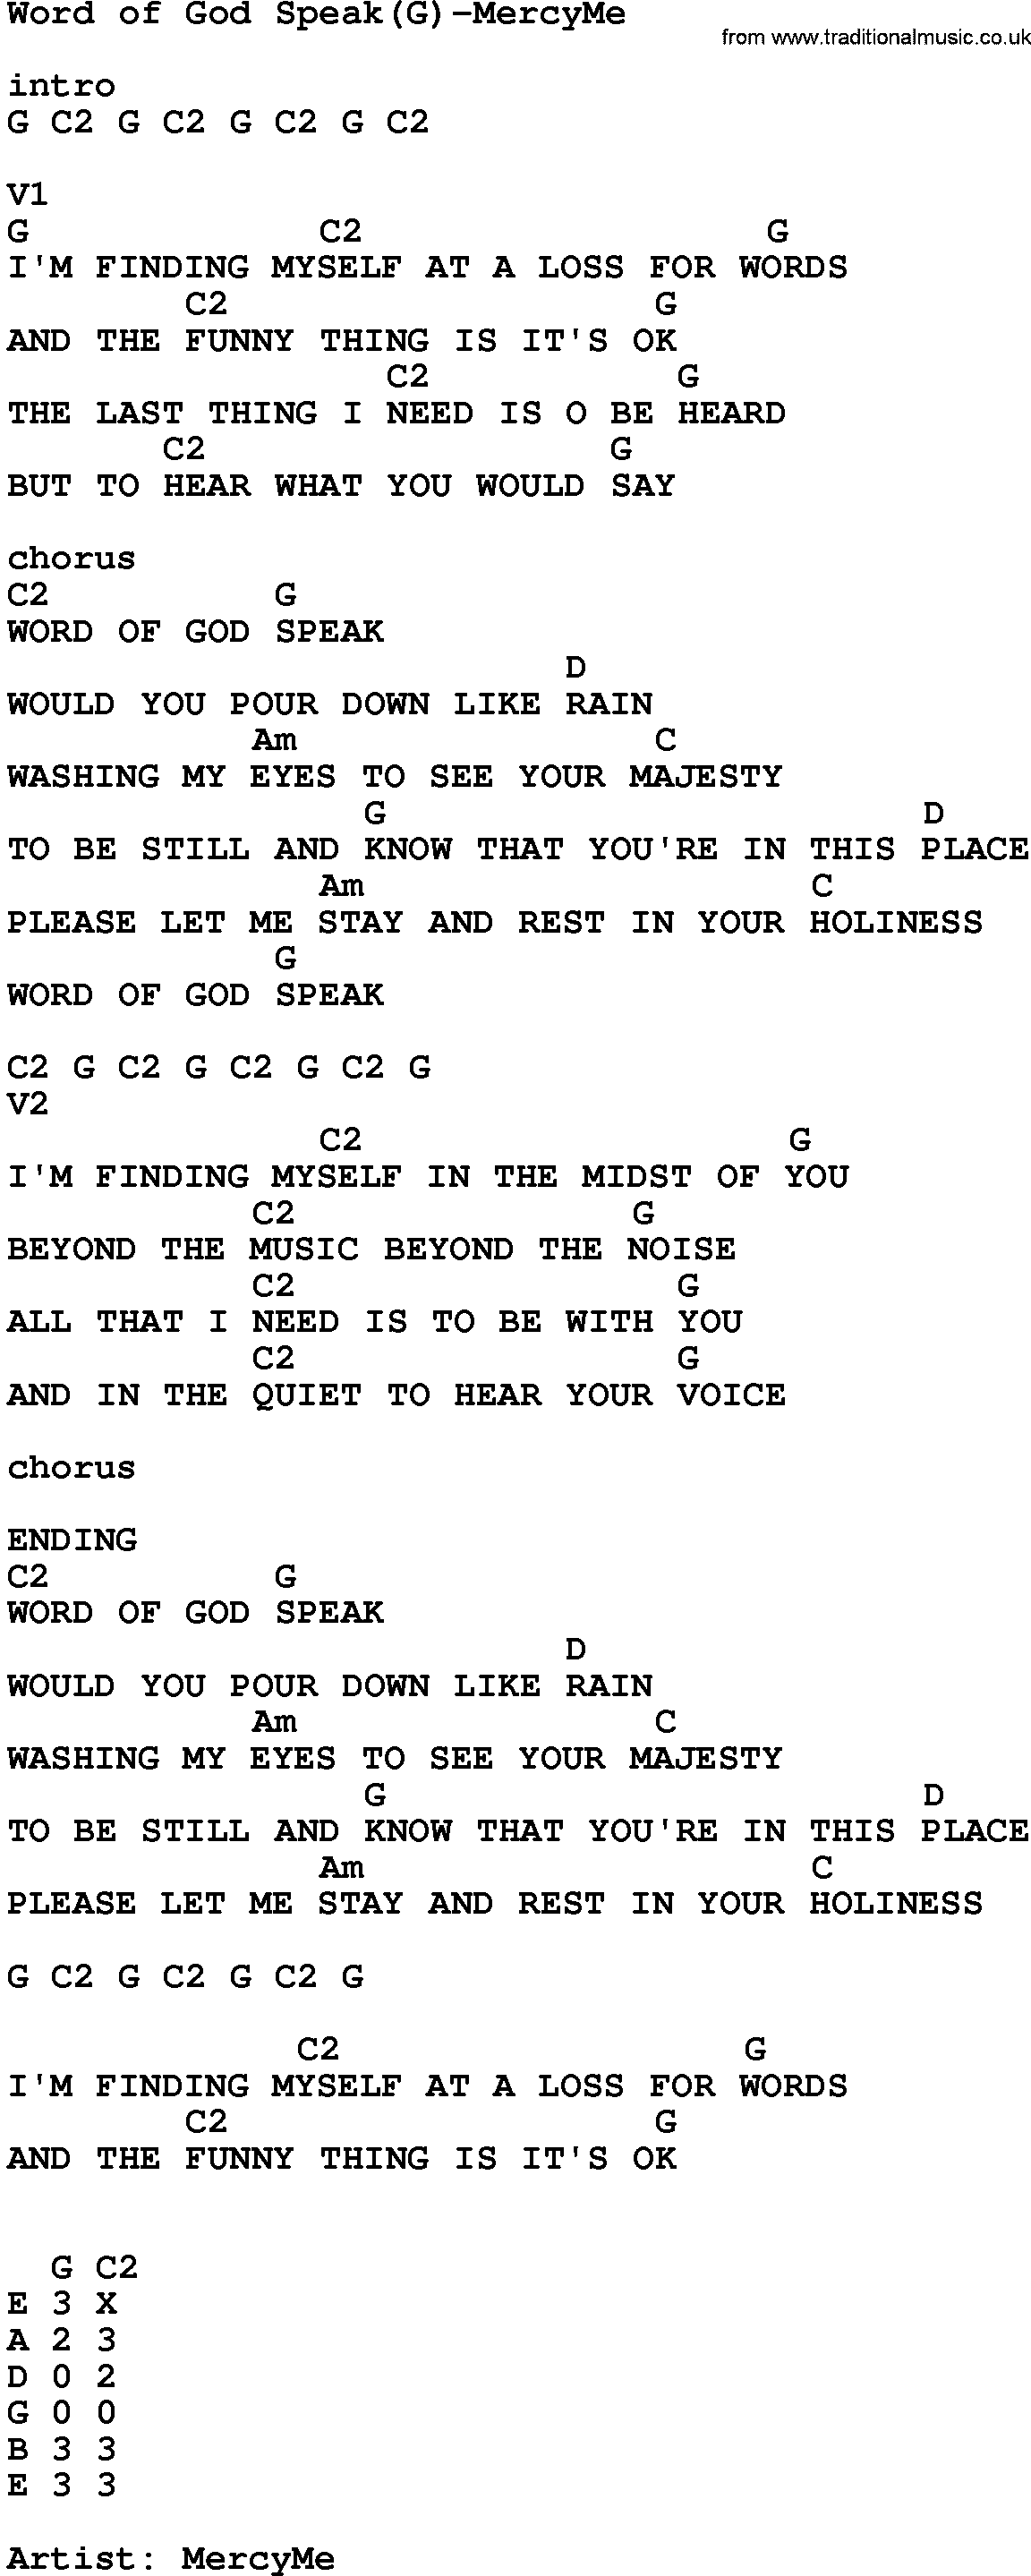 Gospel song word of god speakg mercyme lyrics and chords gospel song word of god speakg mercyme lyrics and chords hexwebz Image collections